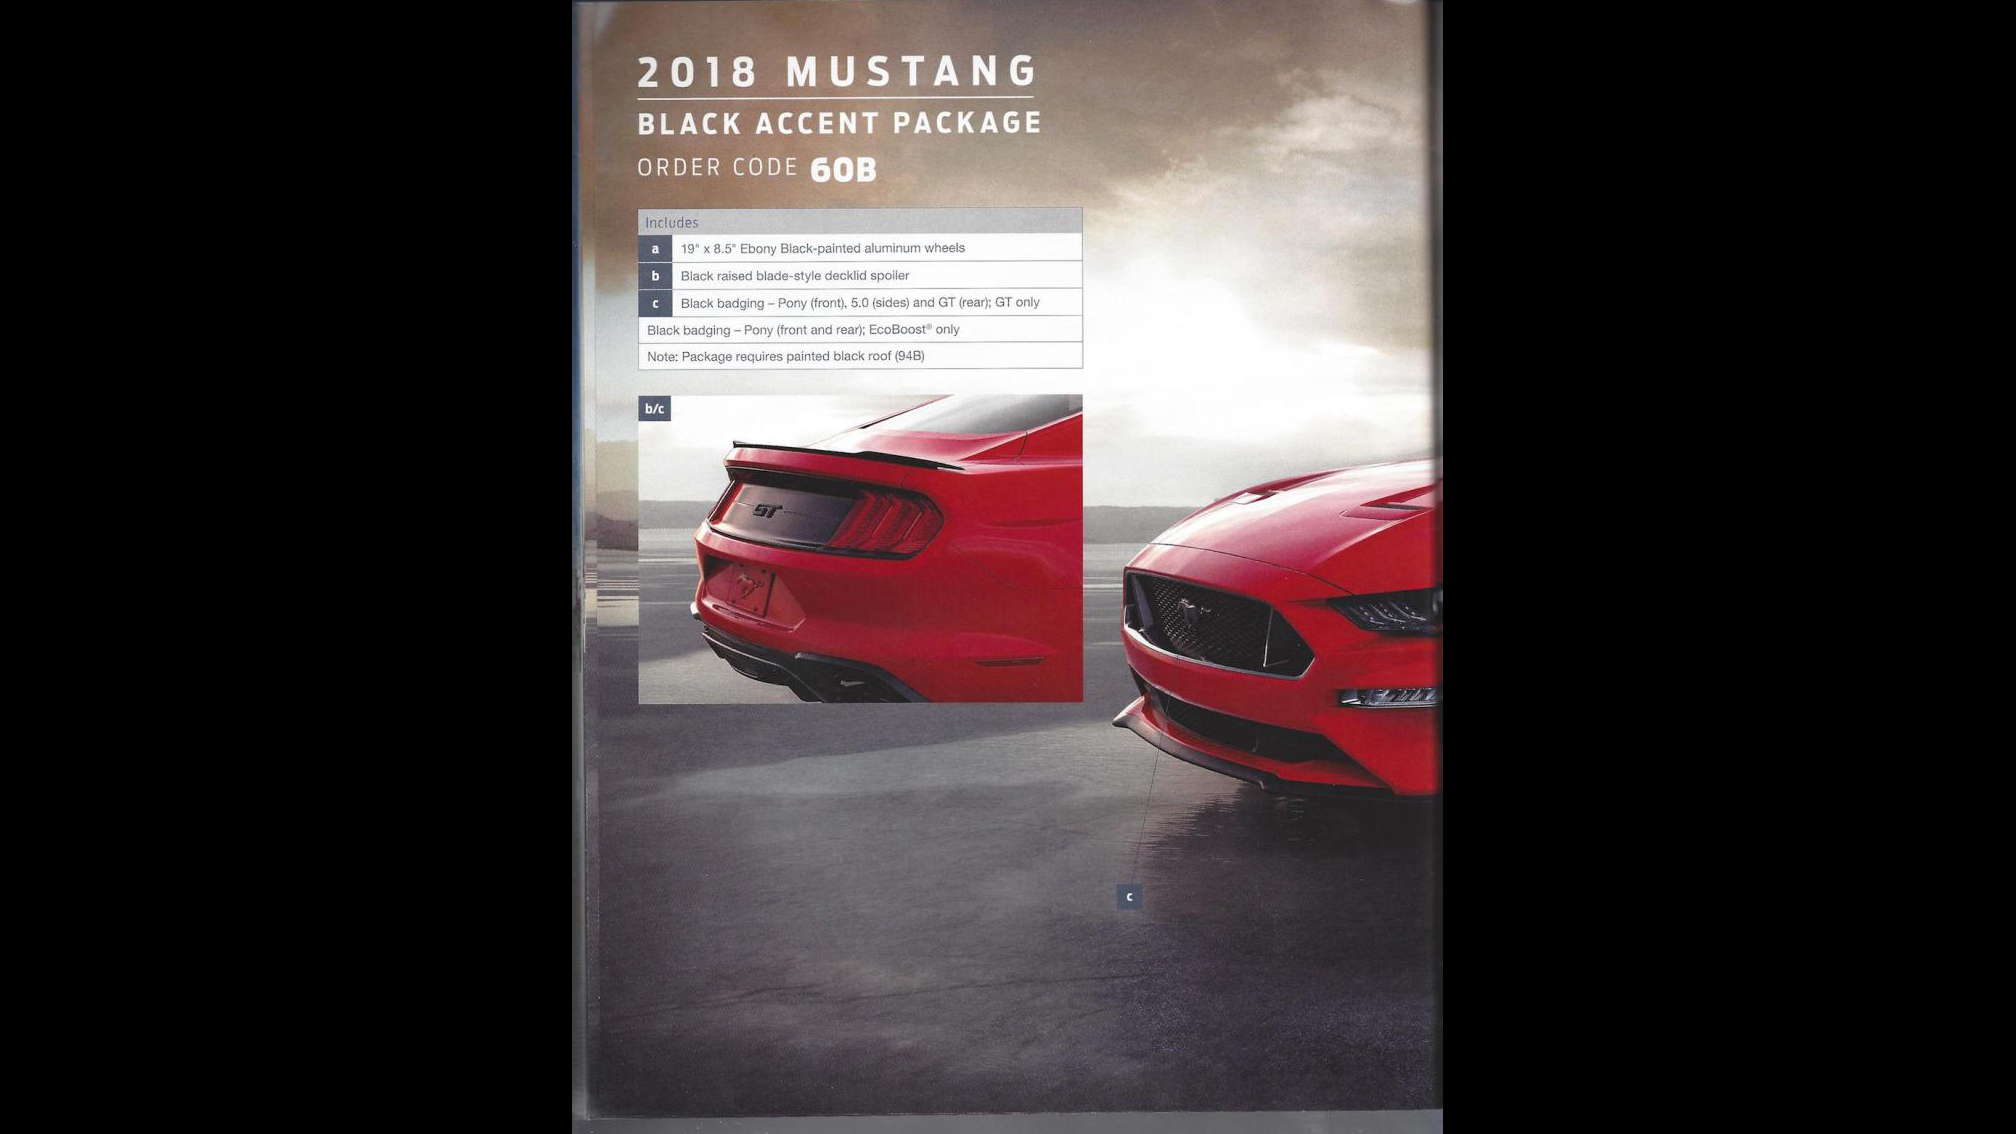 Ford Mustang 2018 Order Guide (10)